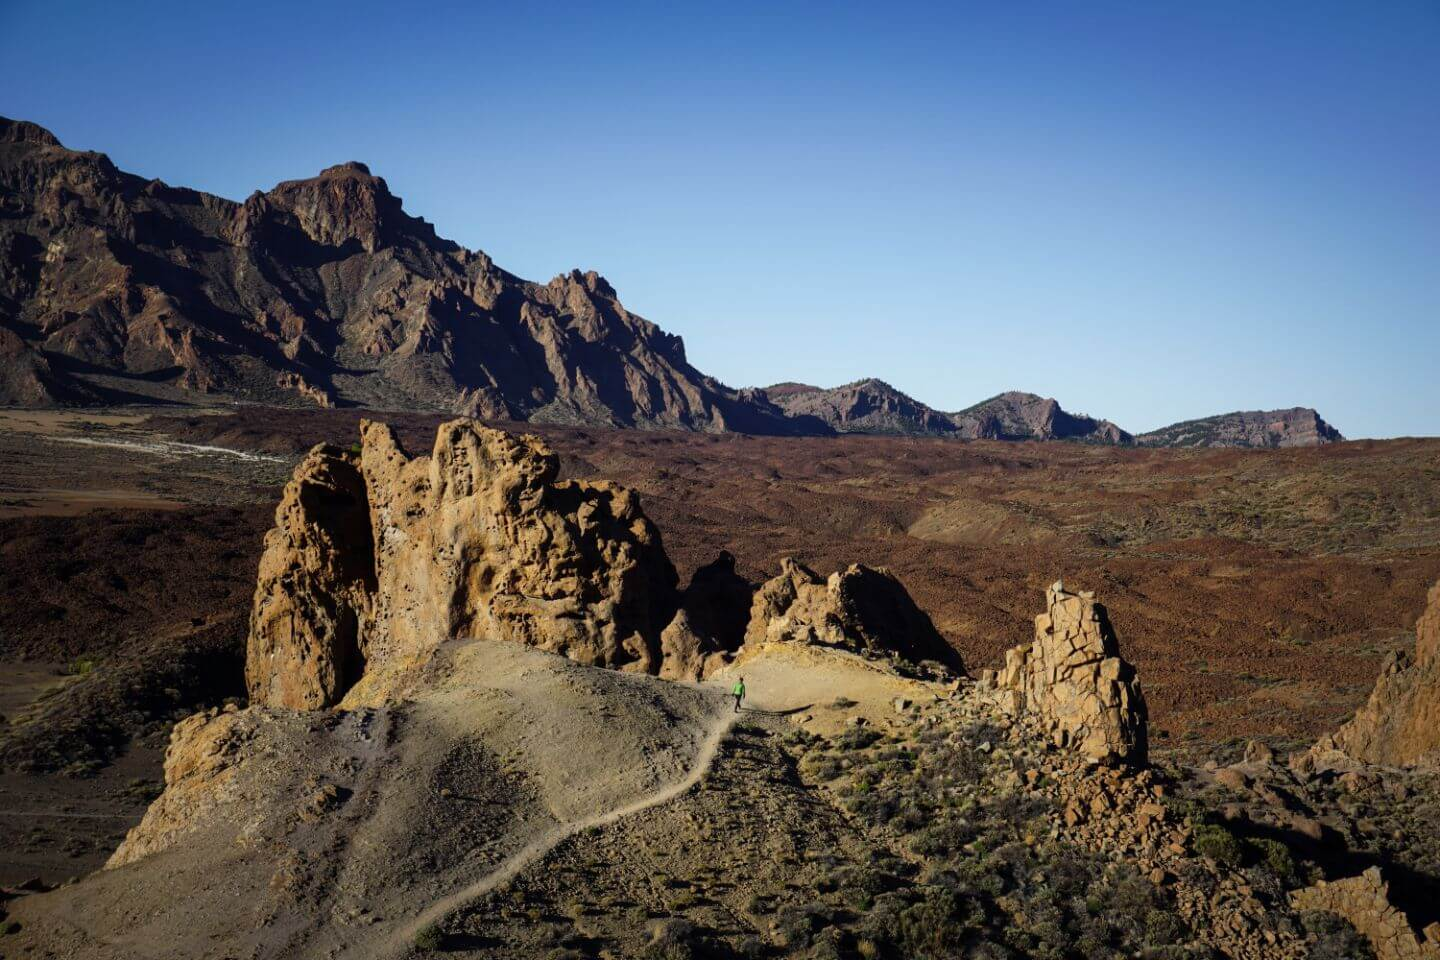 Teide National Park, Tenerife - Best Places to Stay in Tenerife for Hiking